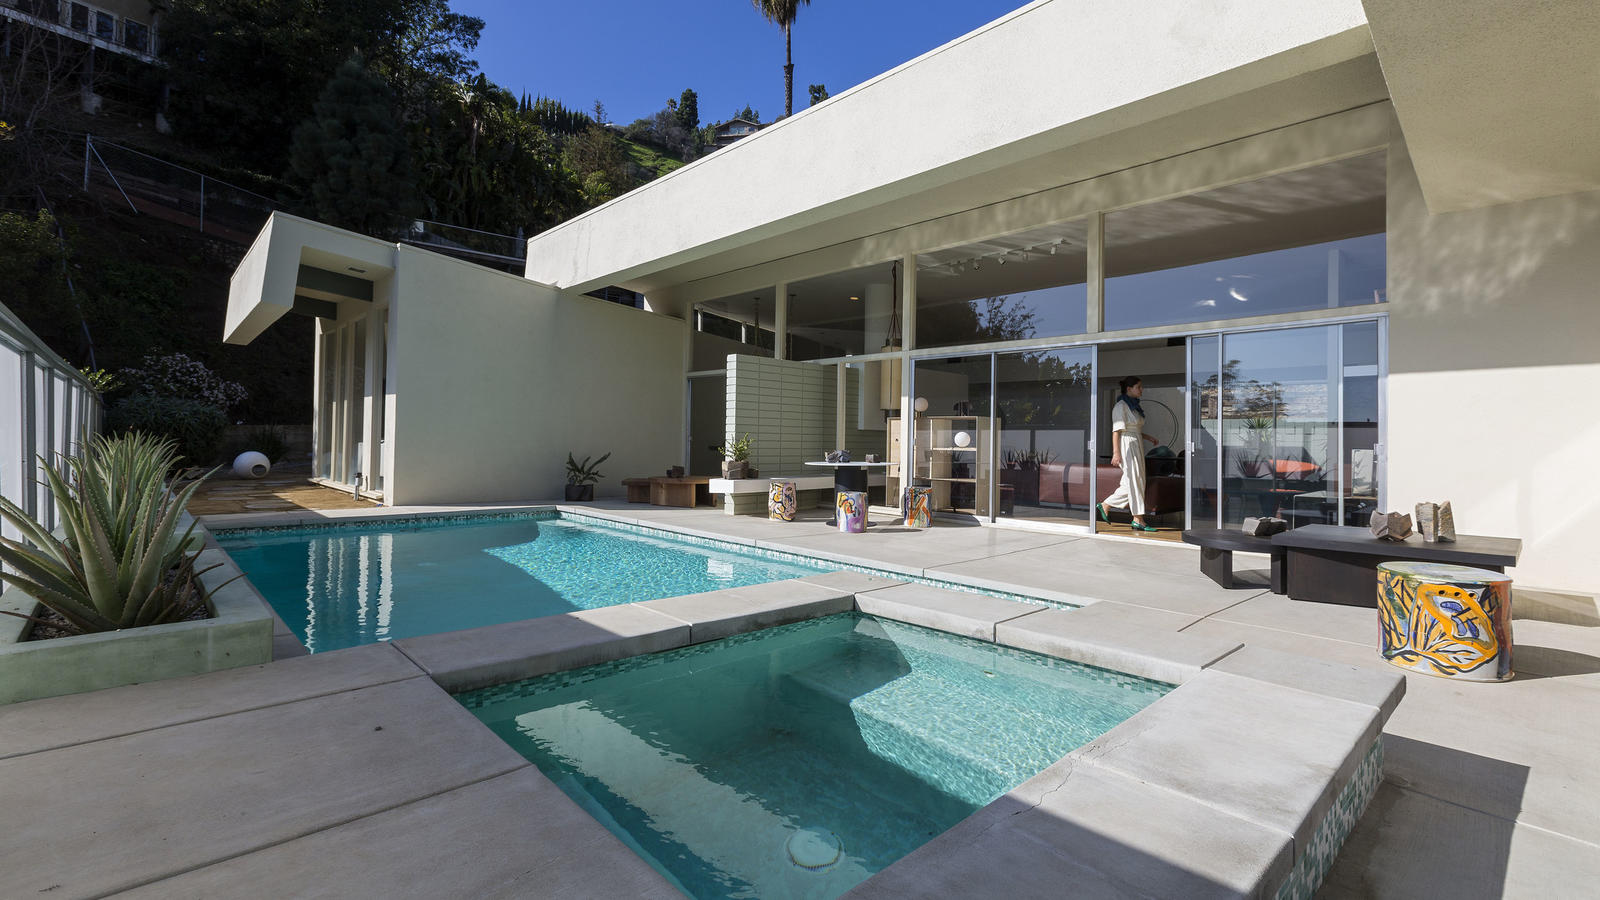 Casa Perfect: A glamorous Hollywood Hills setting for L.A.'s newest design destination (Los Angeles Times)